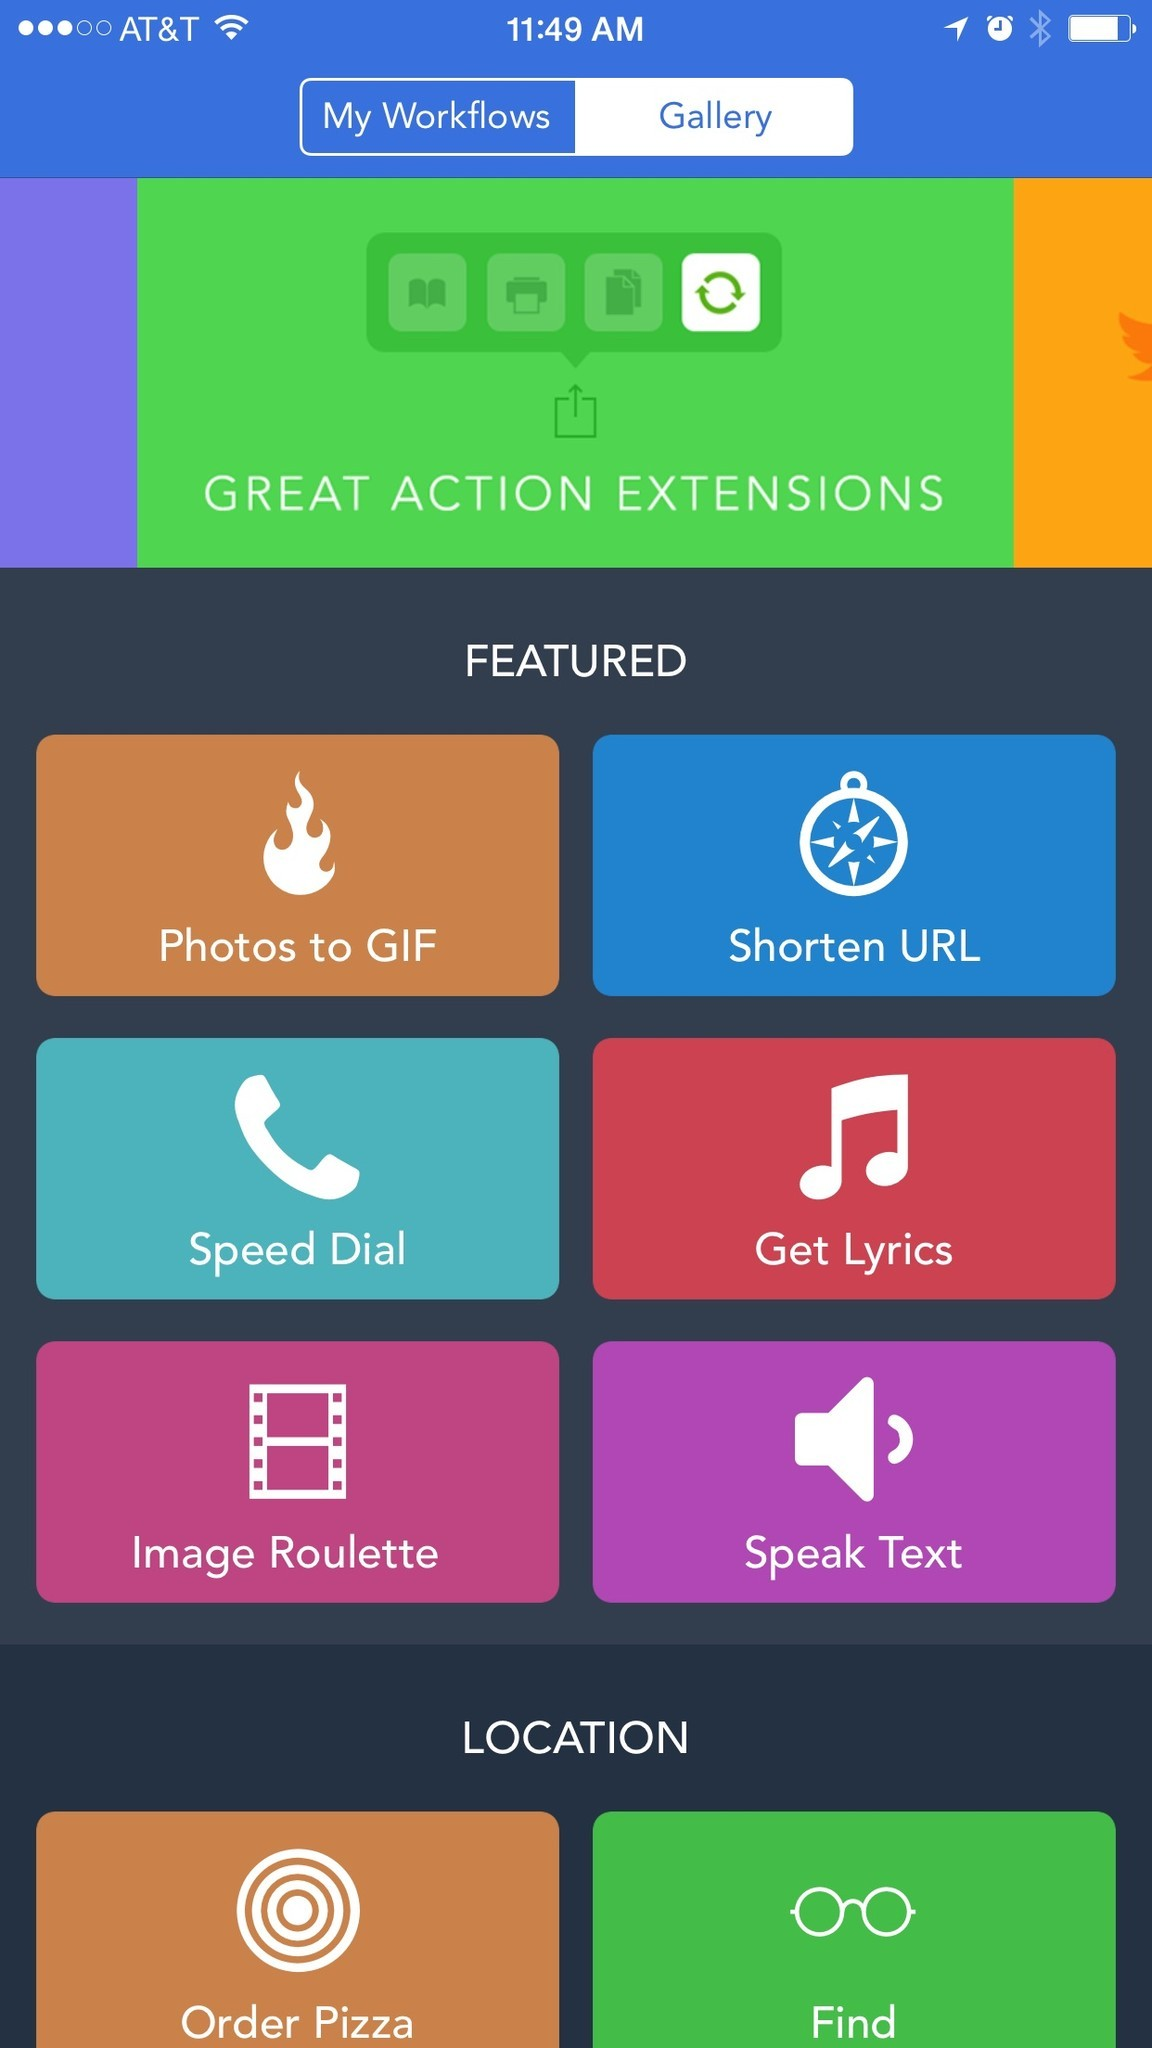 Amazing action extensions for iPhone: Workflow